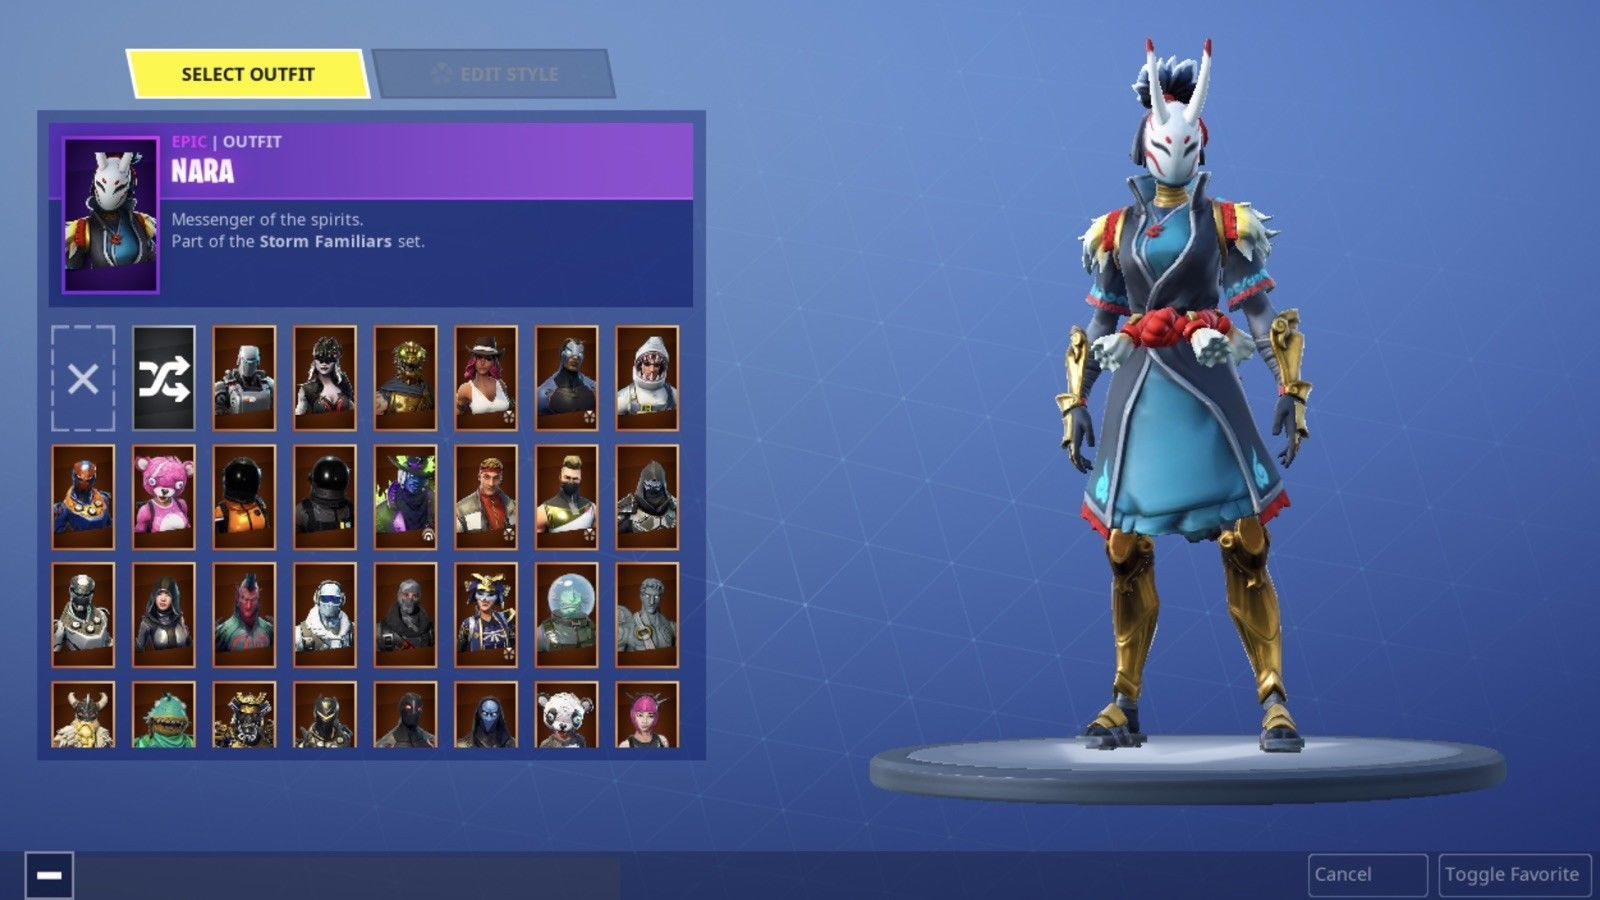 Raffle Rare Fortnite Account 200 Outfits Read Description We Sell